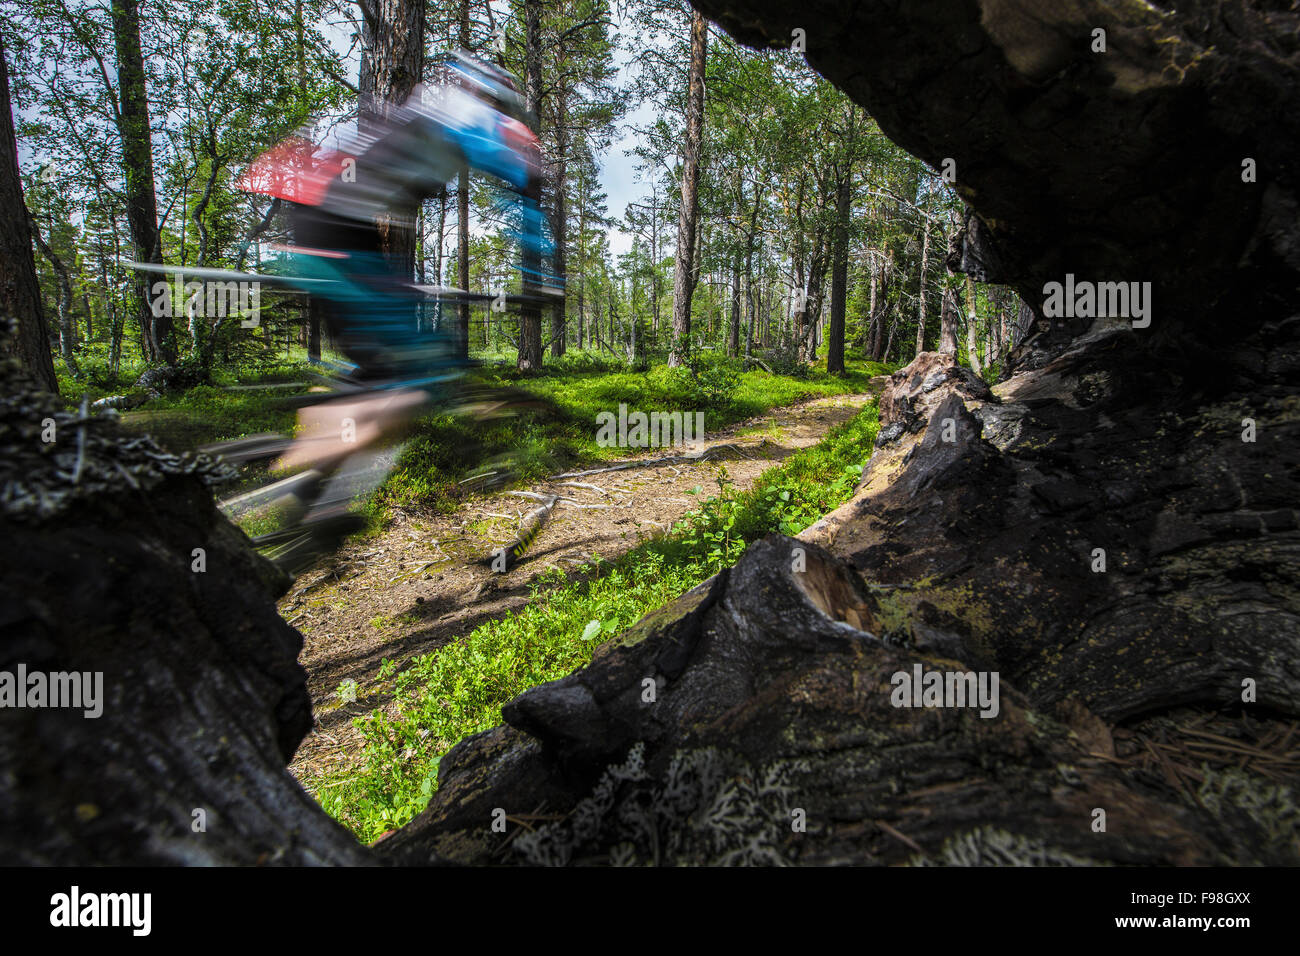 Mountain biker races by on the trails of northern Sweden. - Stock Image